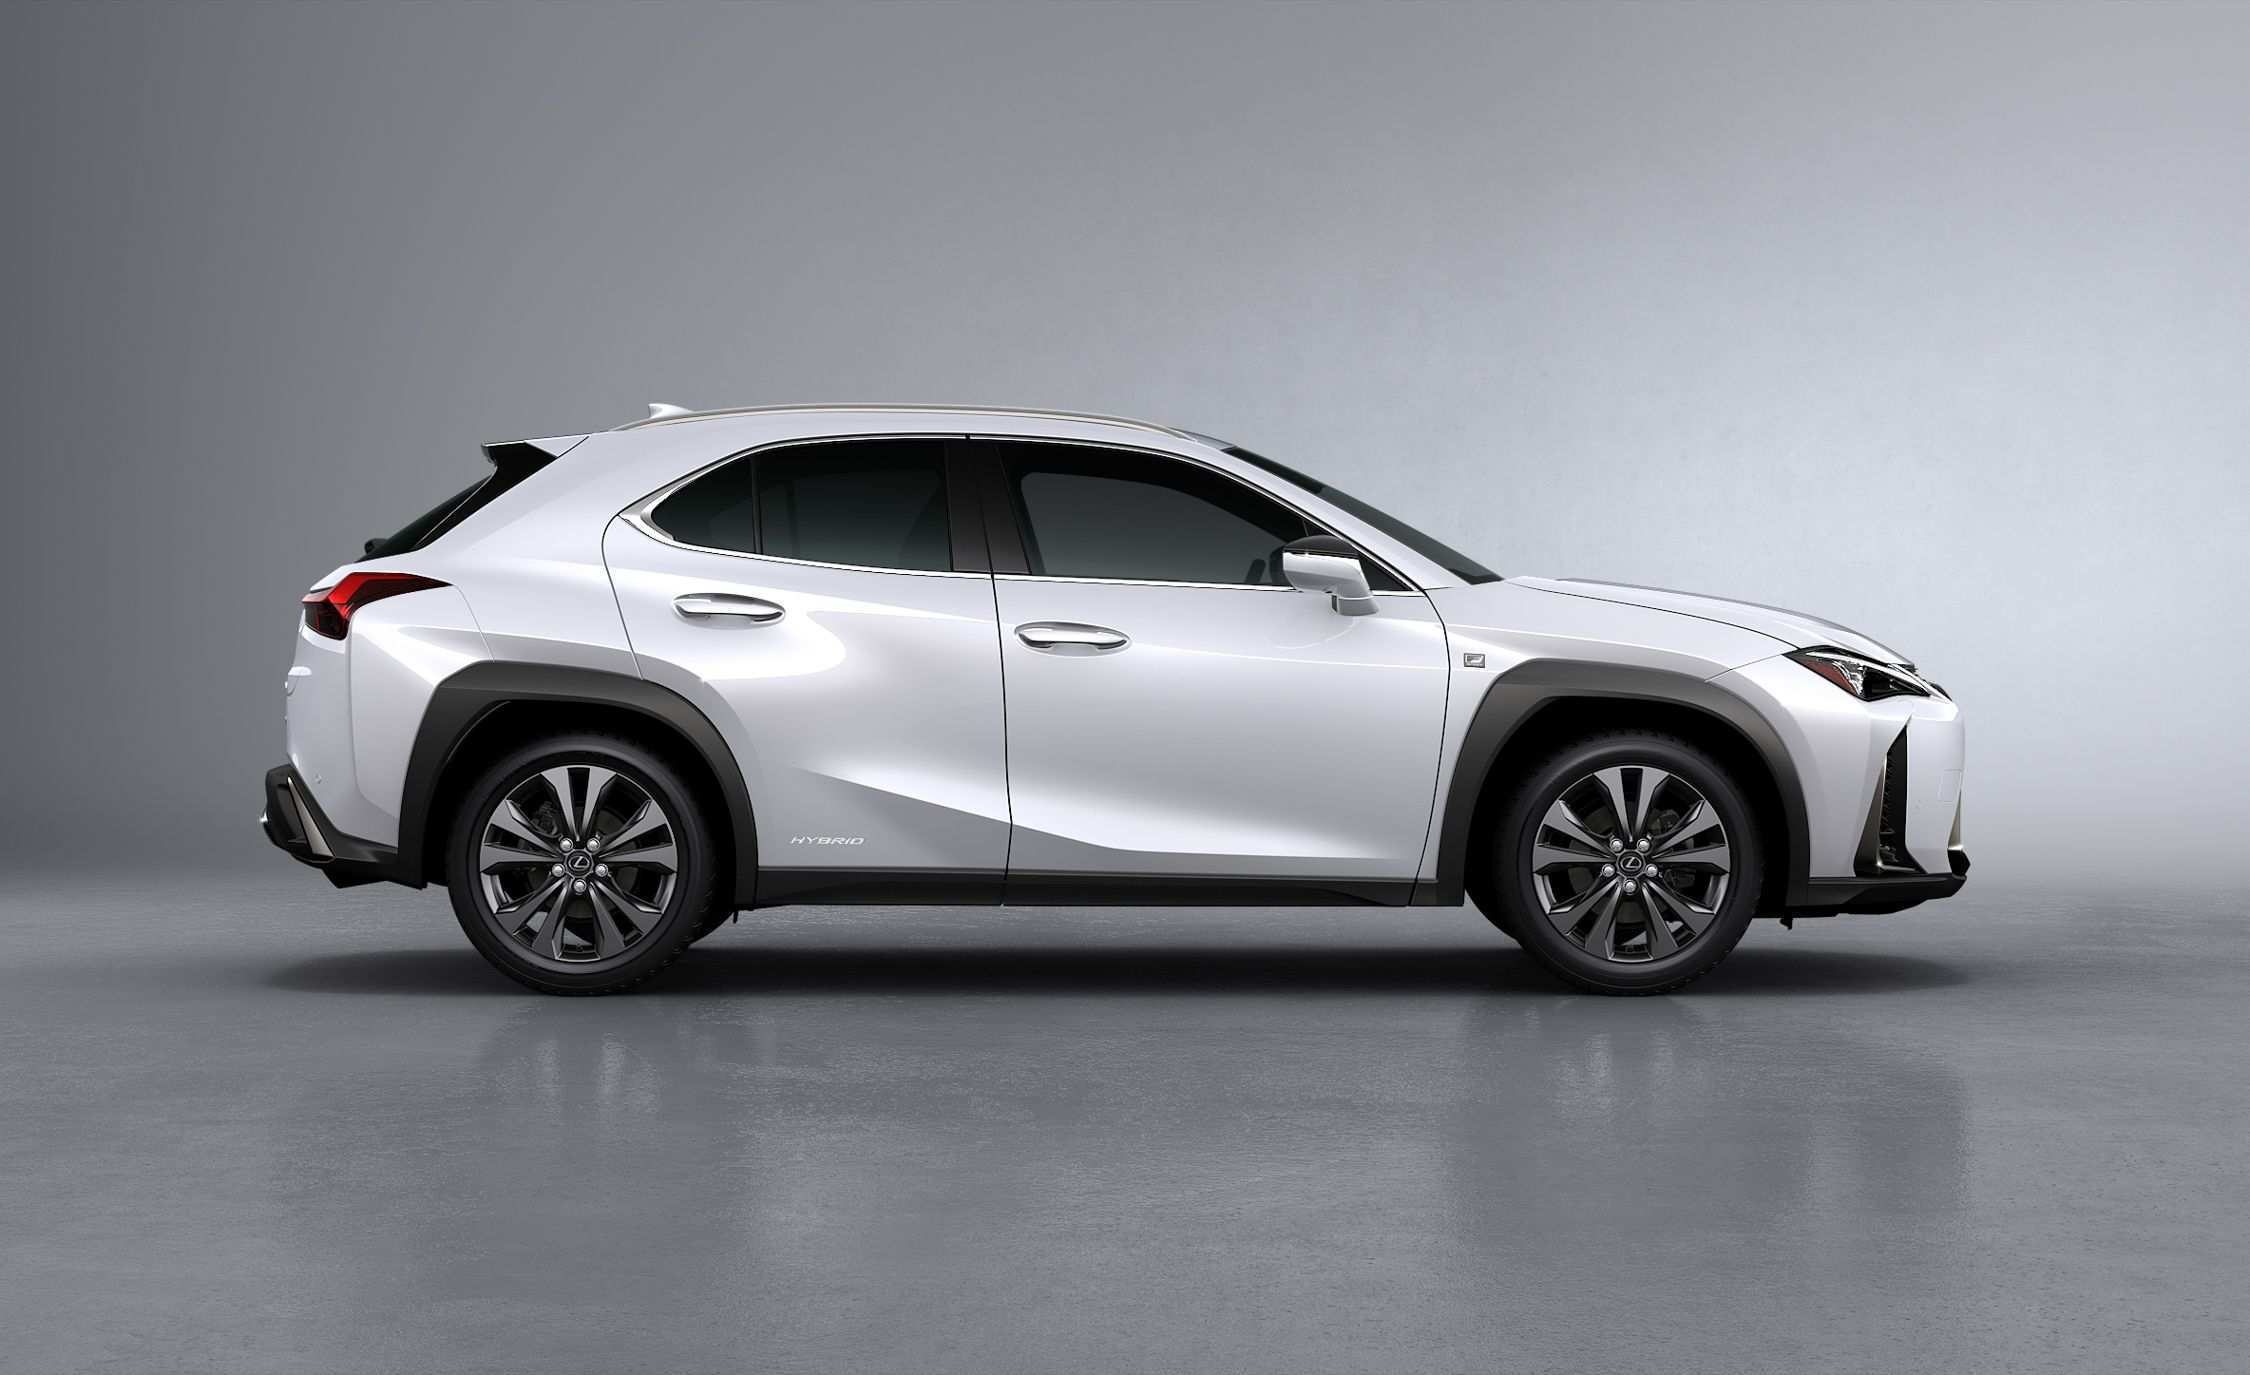 12 Concept of 2019 Lexus Ux Price Canada Exterior and Interior with 2019 Lexus Ux Price Canada